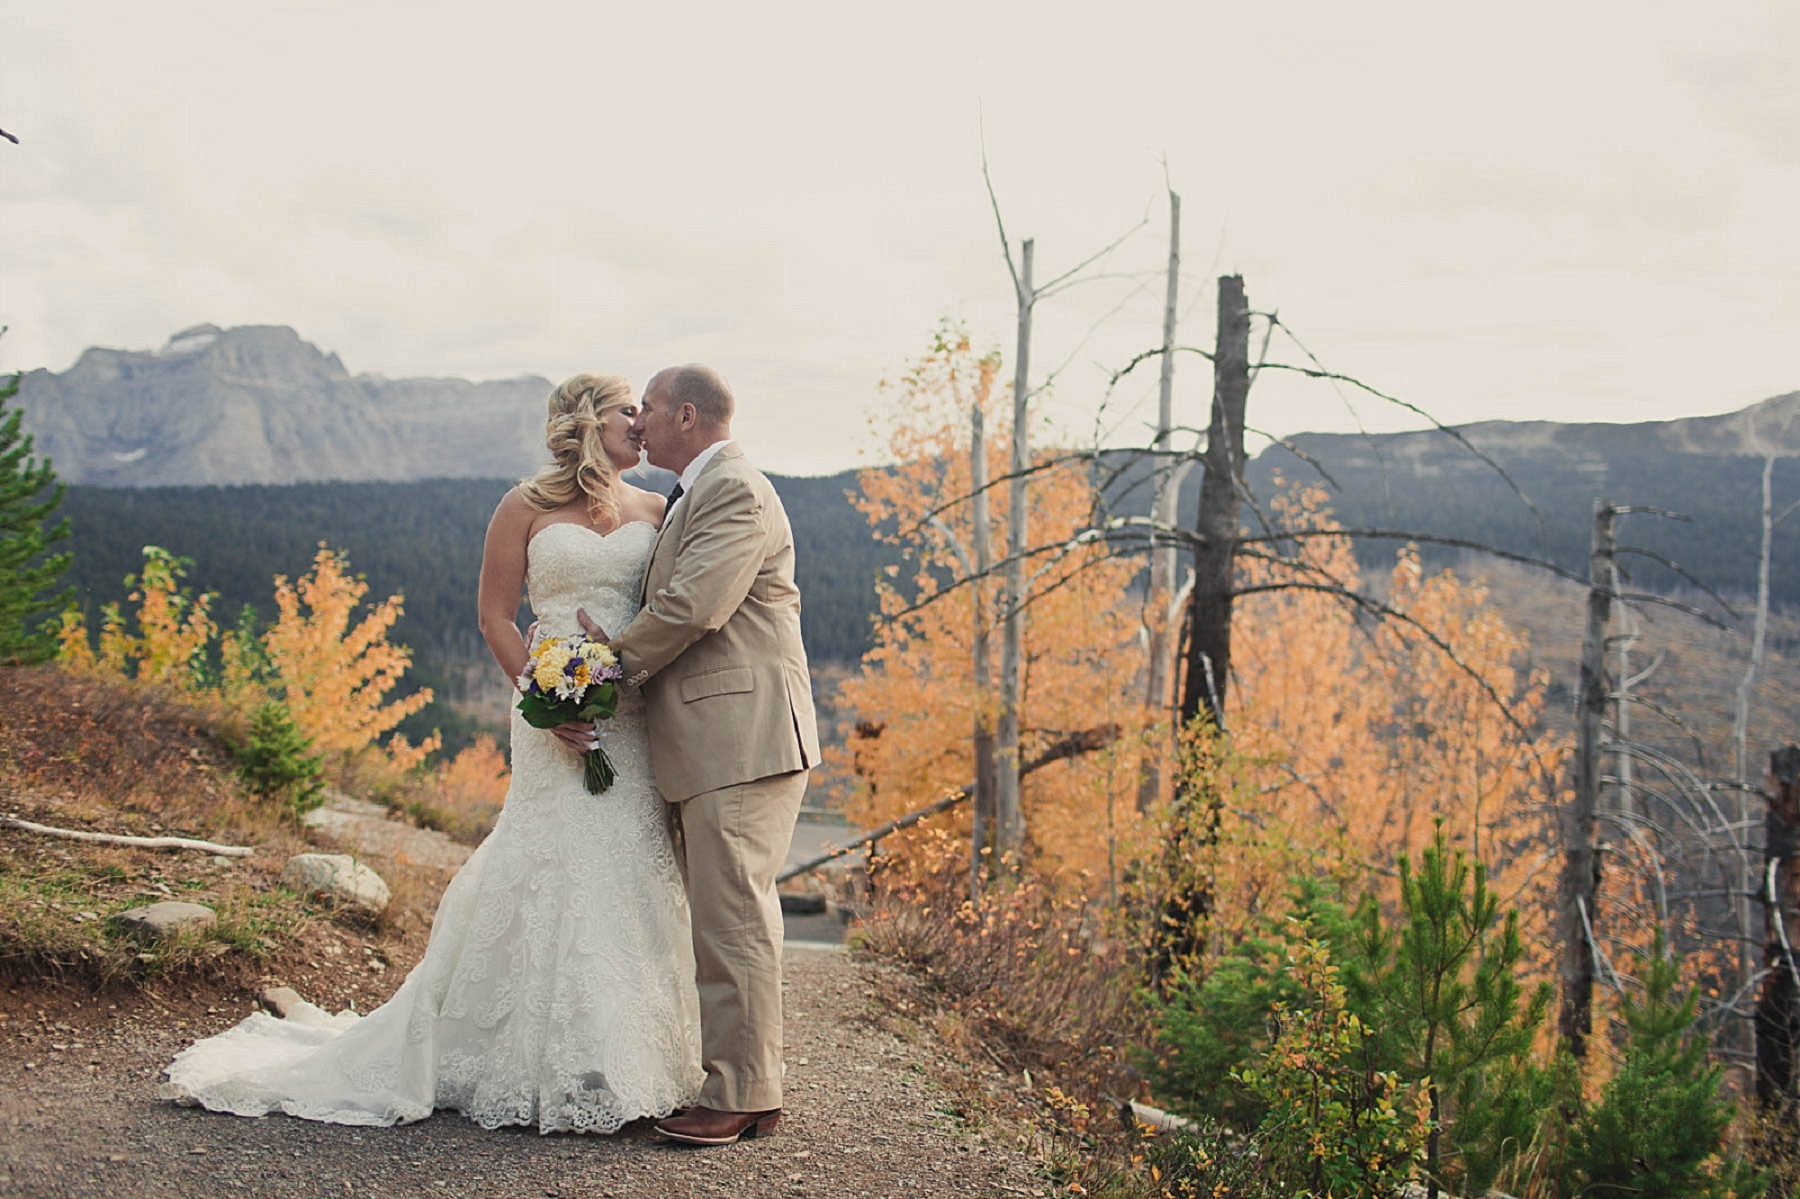 Jennifer_Mooney_photo_day_after_session_glacier_park_elegant_wedding_bride_groom_destination_-25.jpg